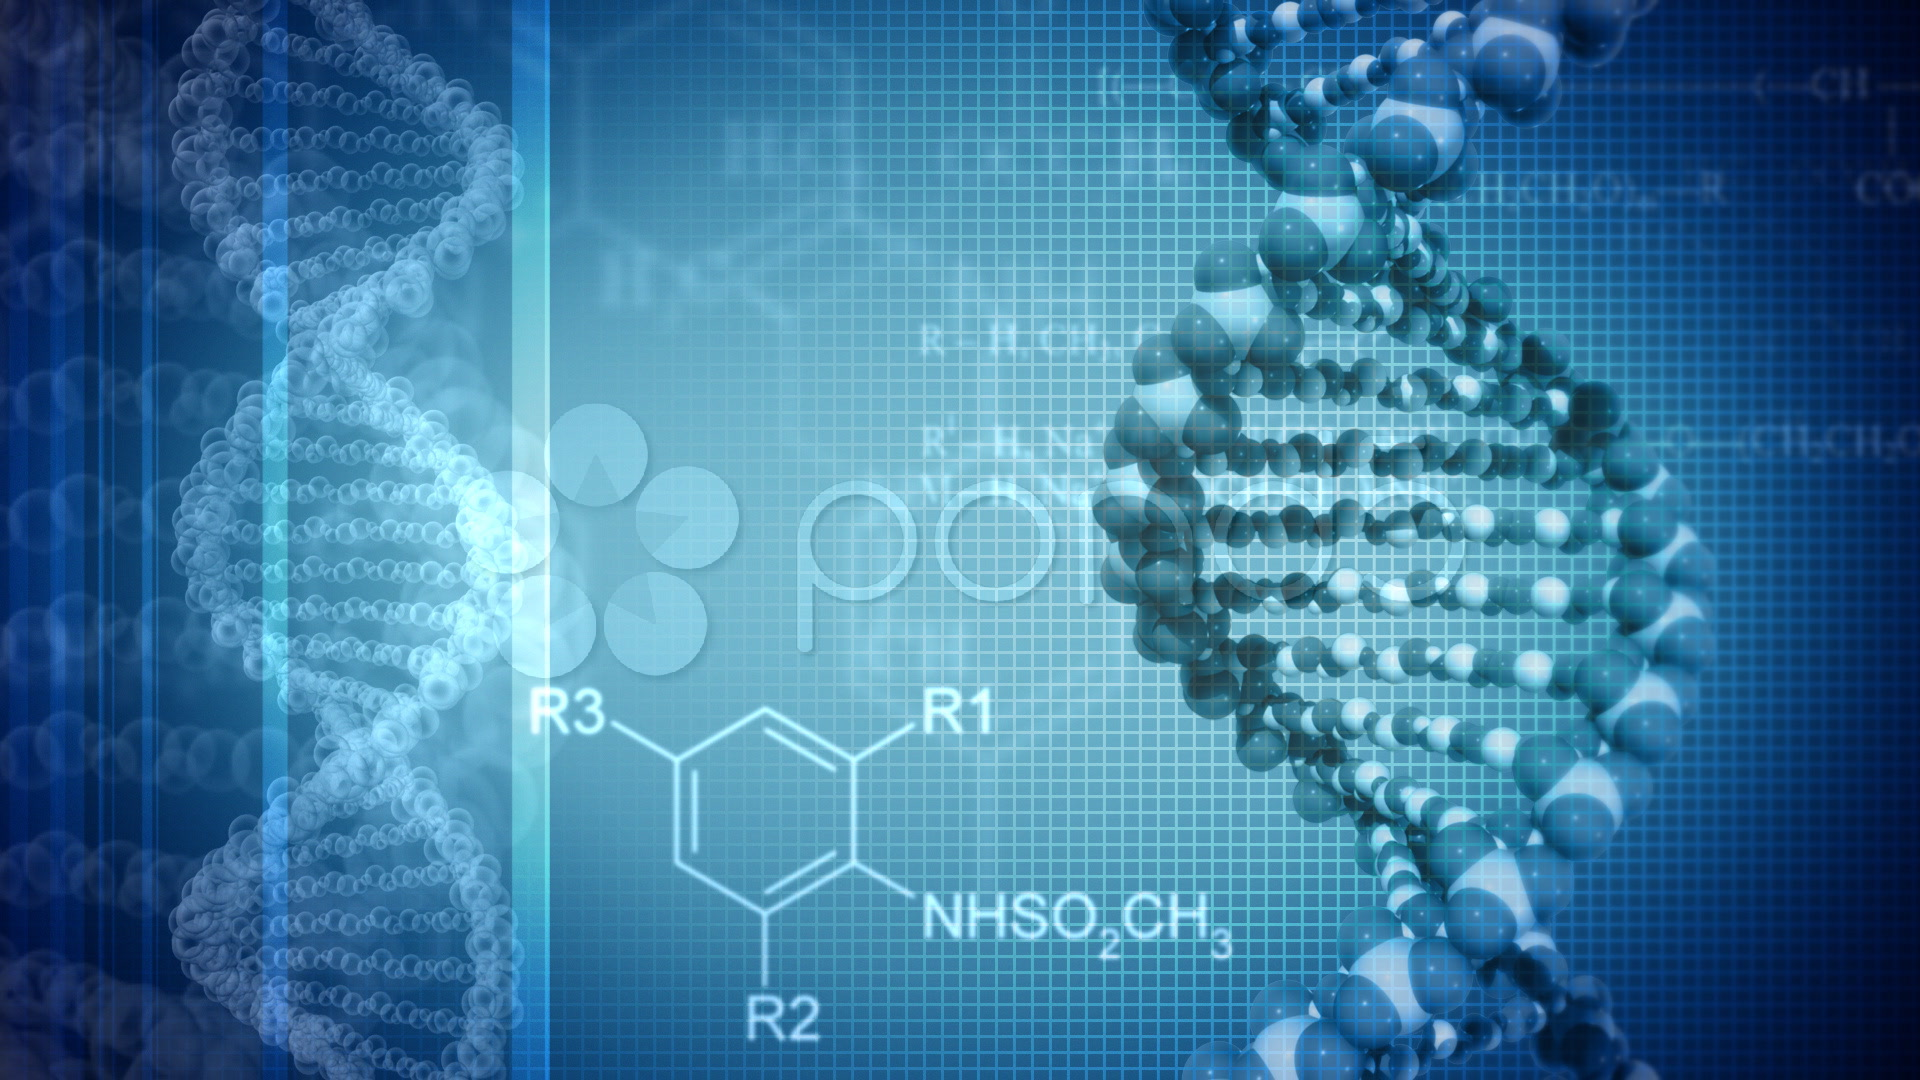 Dna Wallpaper High Resolution Dna Background Black Dna Background 1920x1080